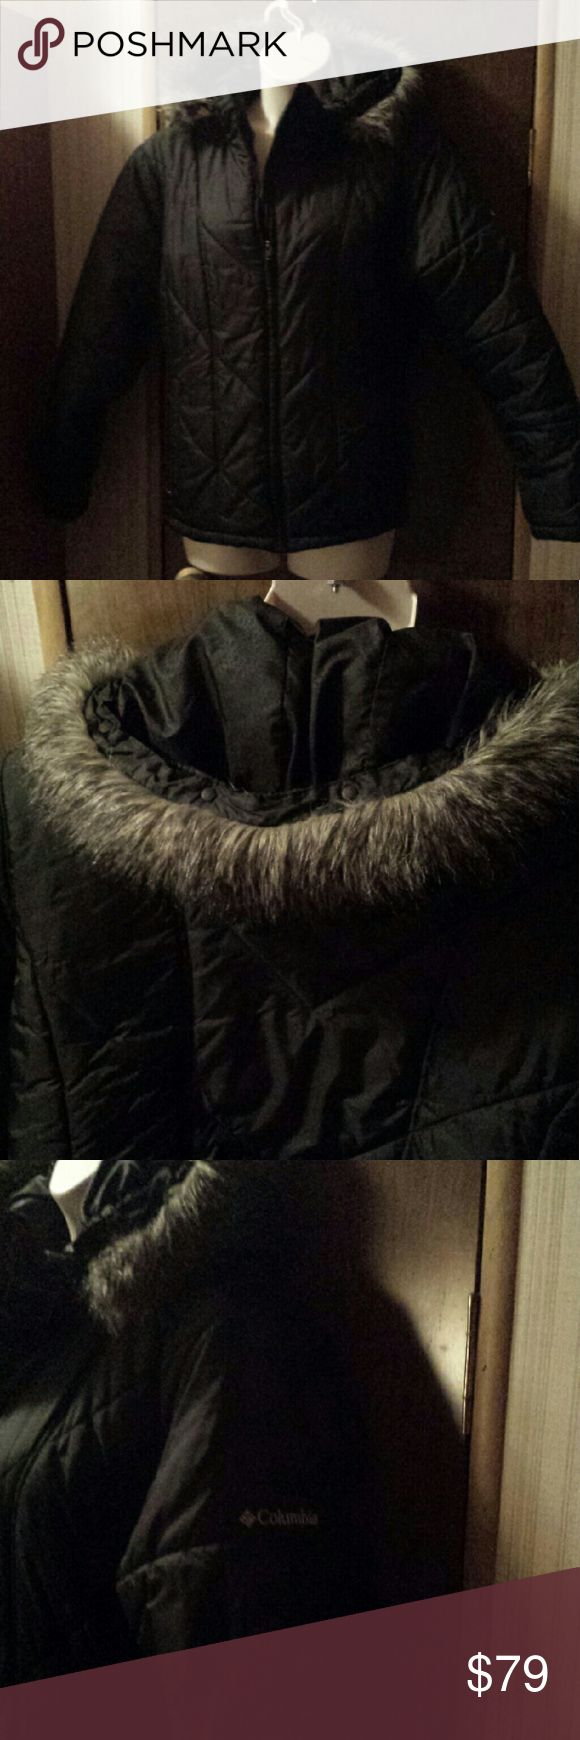 Women's plus size Colombia puffer coat size 2X Warm black water resistant puffer jacket by Colombia with faux fur trimmed hood. Zip front, two slash pockets with zip closures, inside pocket with Velcro closure. Fur trim is removable, hood is adjustable for snug fit around your head. In excellent used condition. Colombia Jackets & Coats Puffers